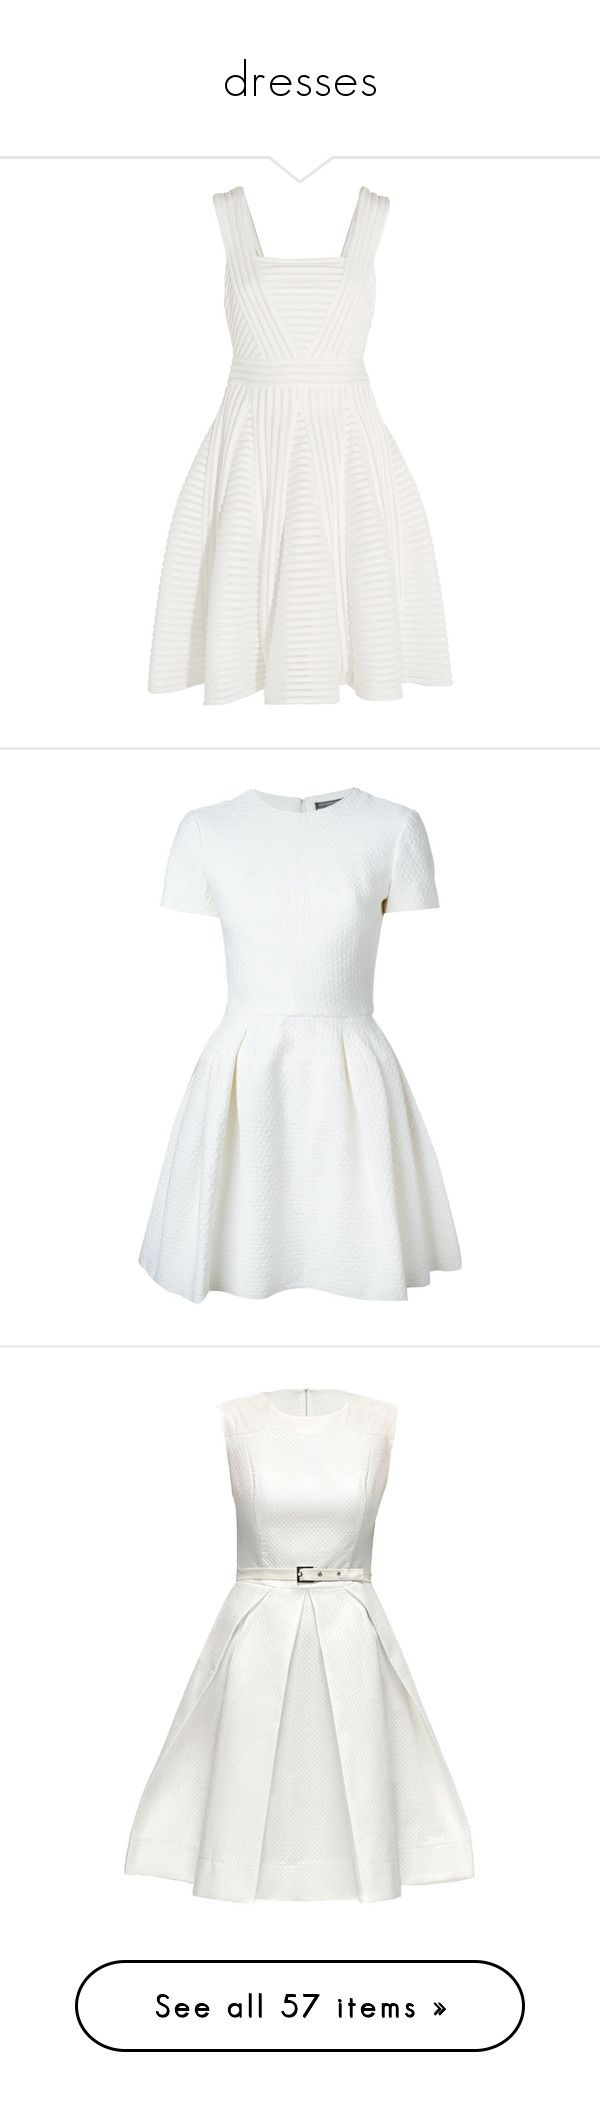 """""""dresses"""" by glamgirl321 ❤ liked on Polyvore featuring dresses, white, pleated cocktail dress, ribbed knit dress, white pleated dress, glamorous dresses, maje dress, vestidos, short dresses and short sleeve mini dress"""